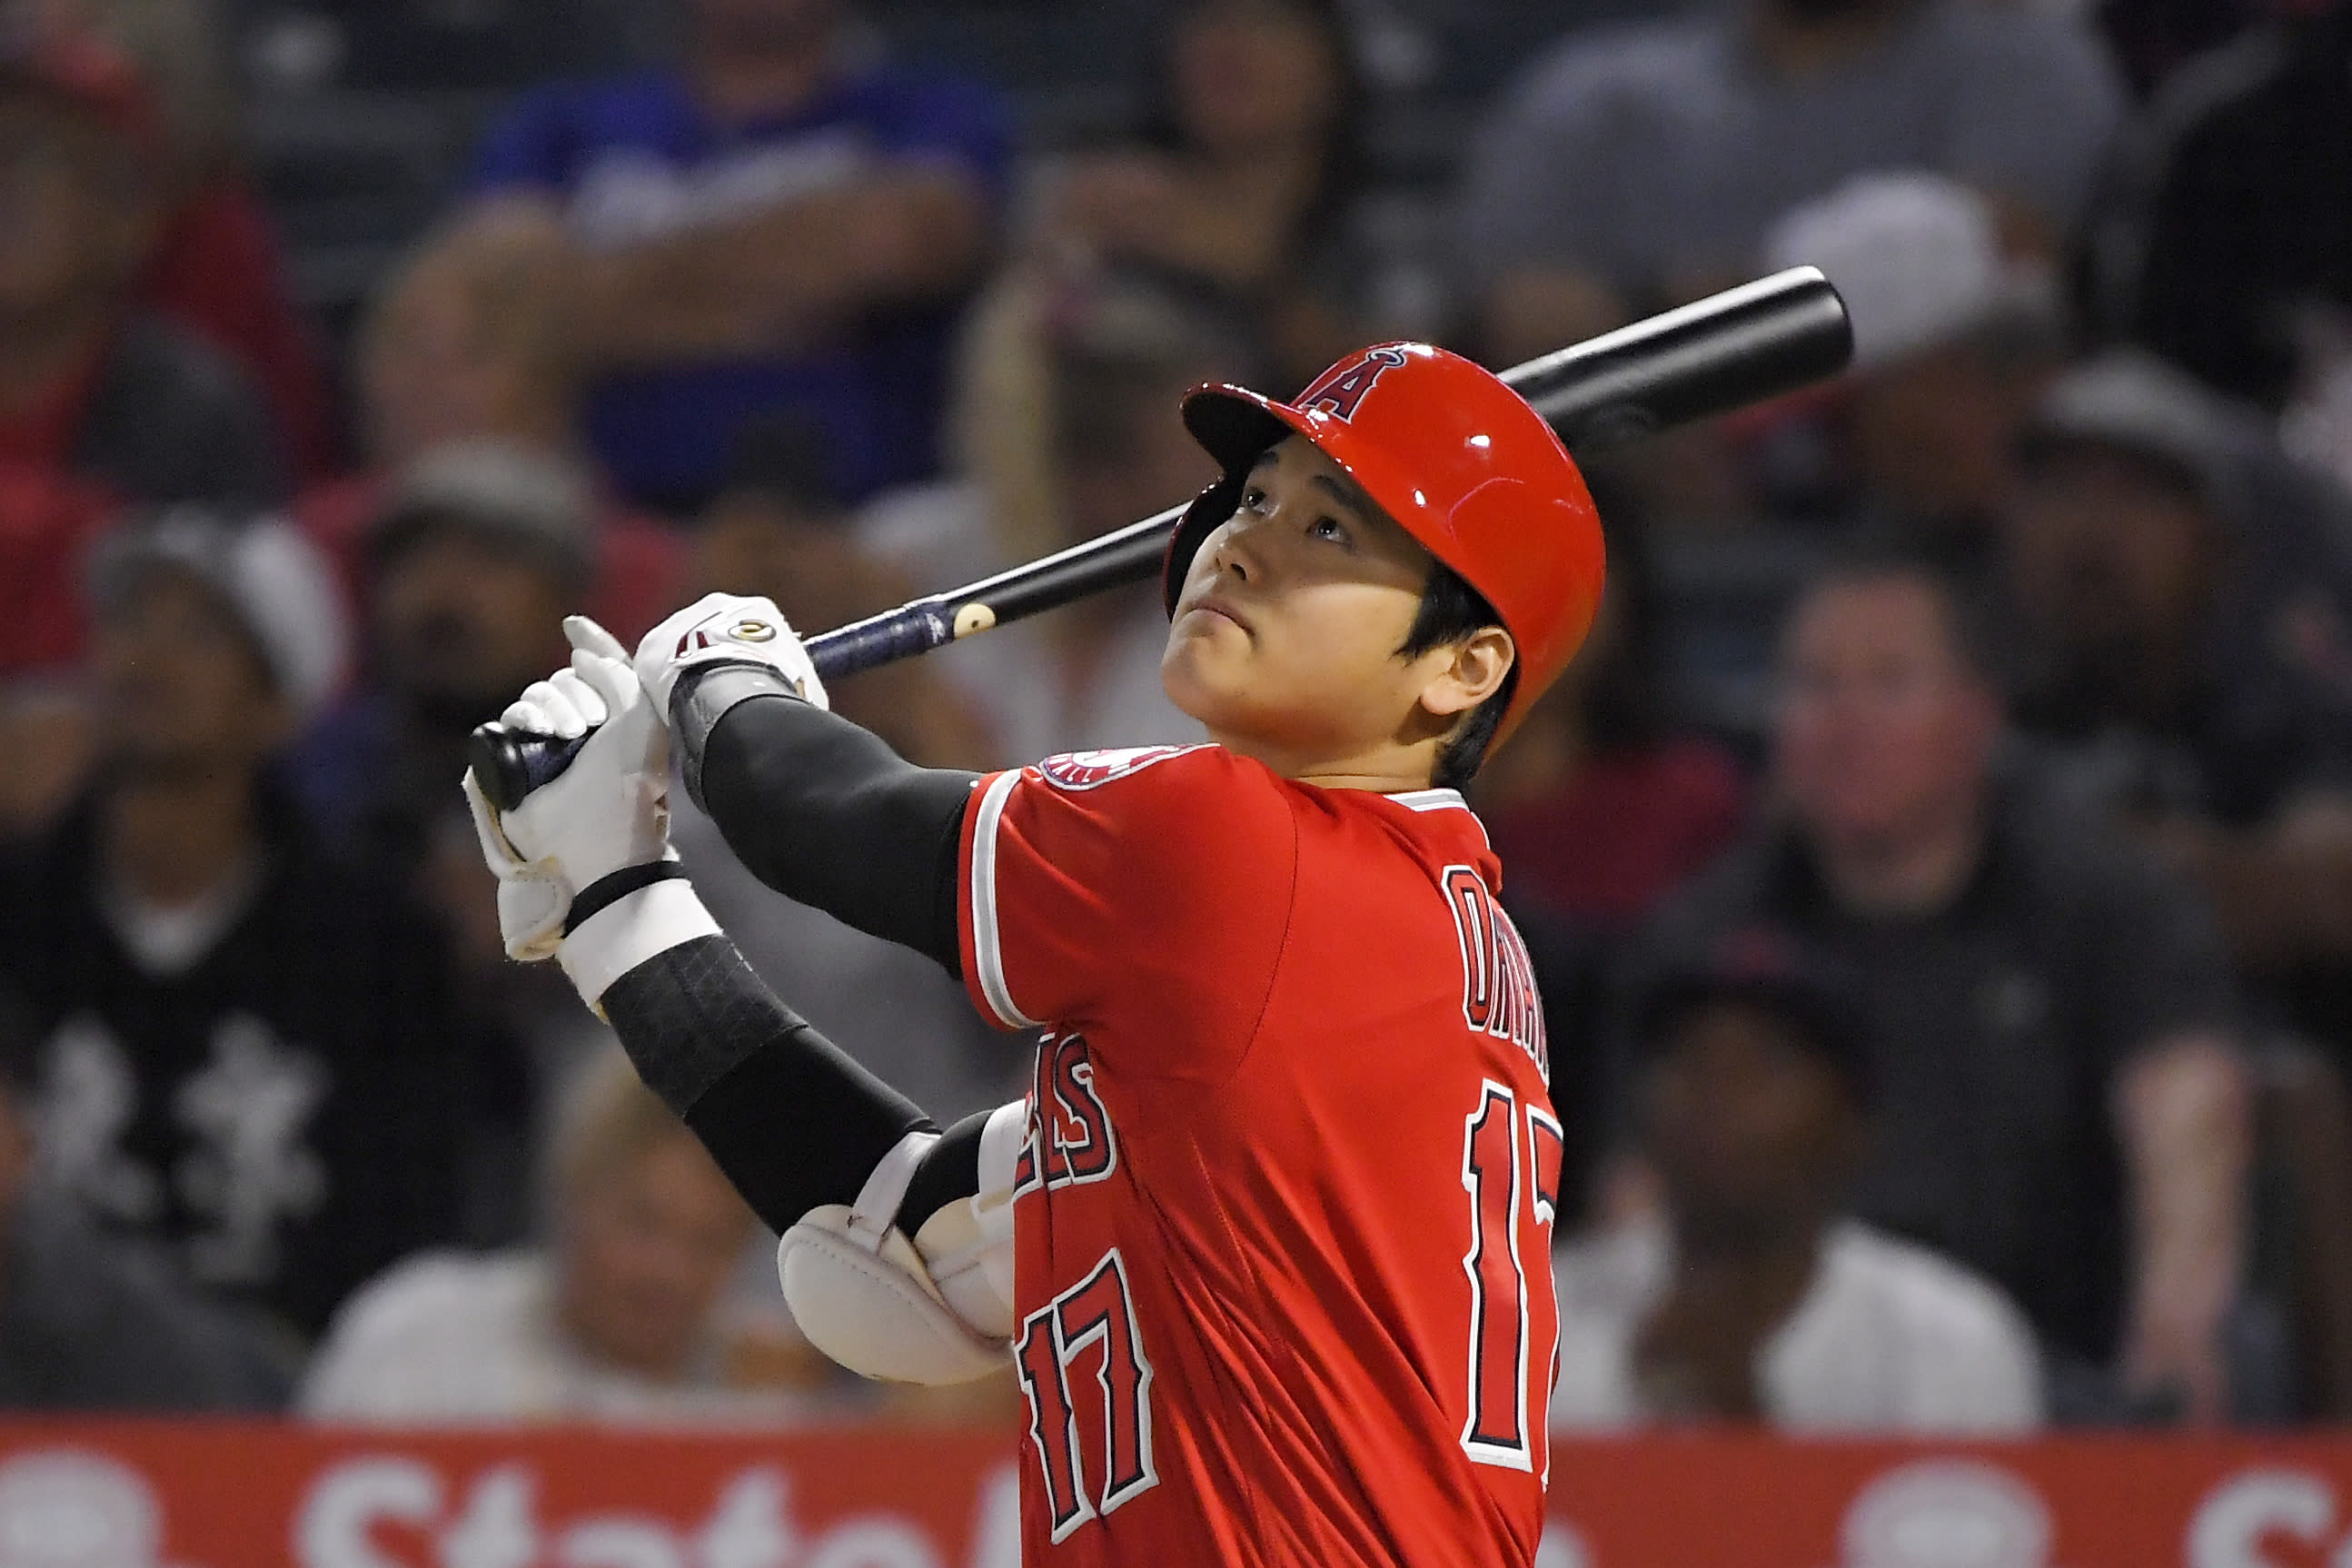 Knee surgery to end season for Angels' Ohtani